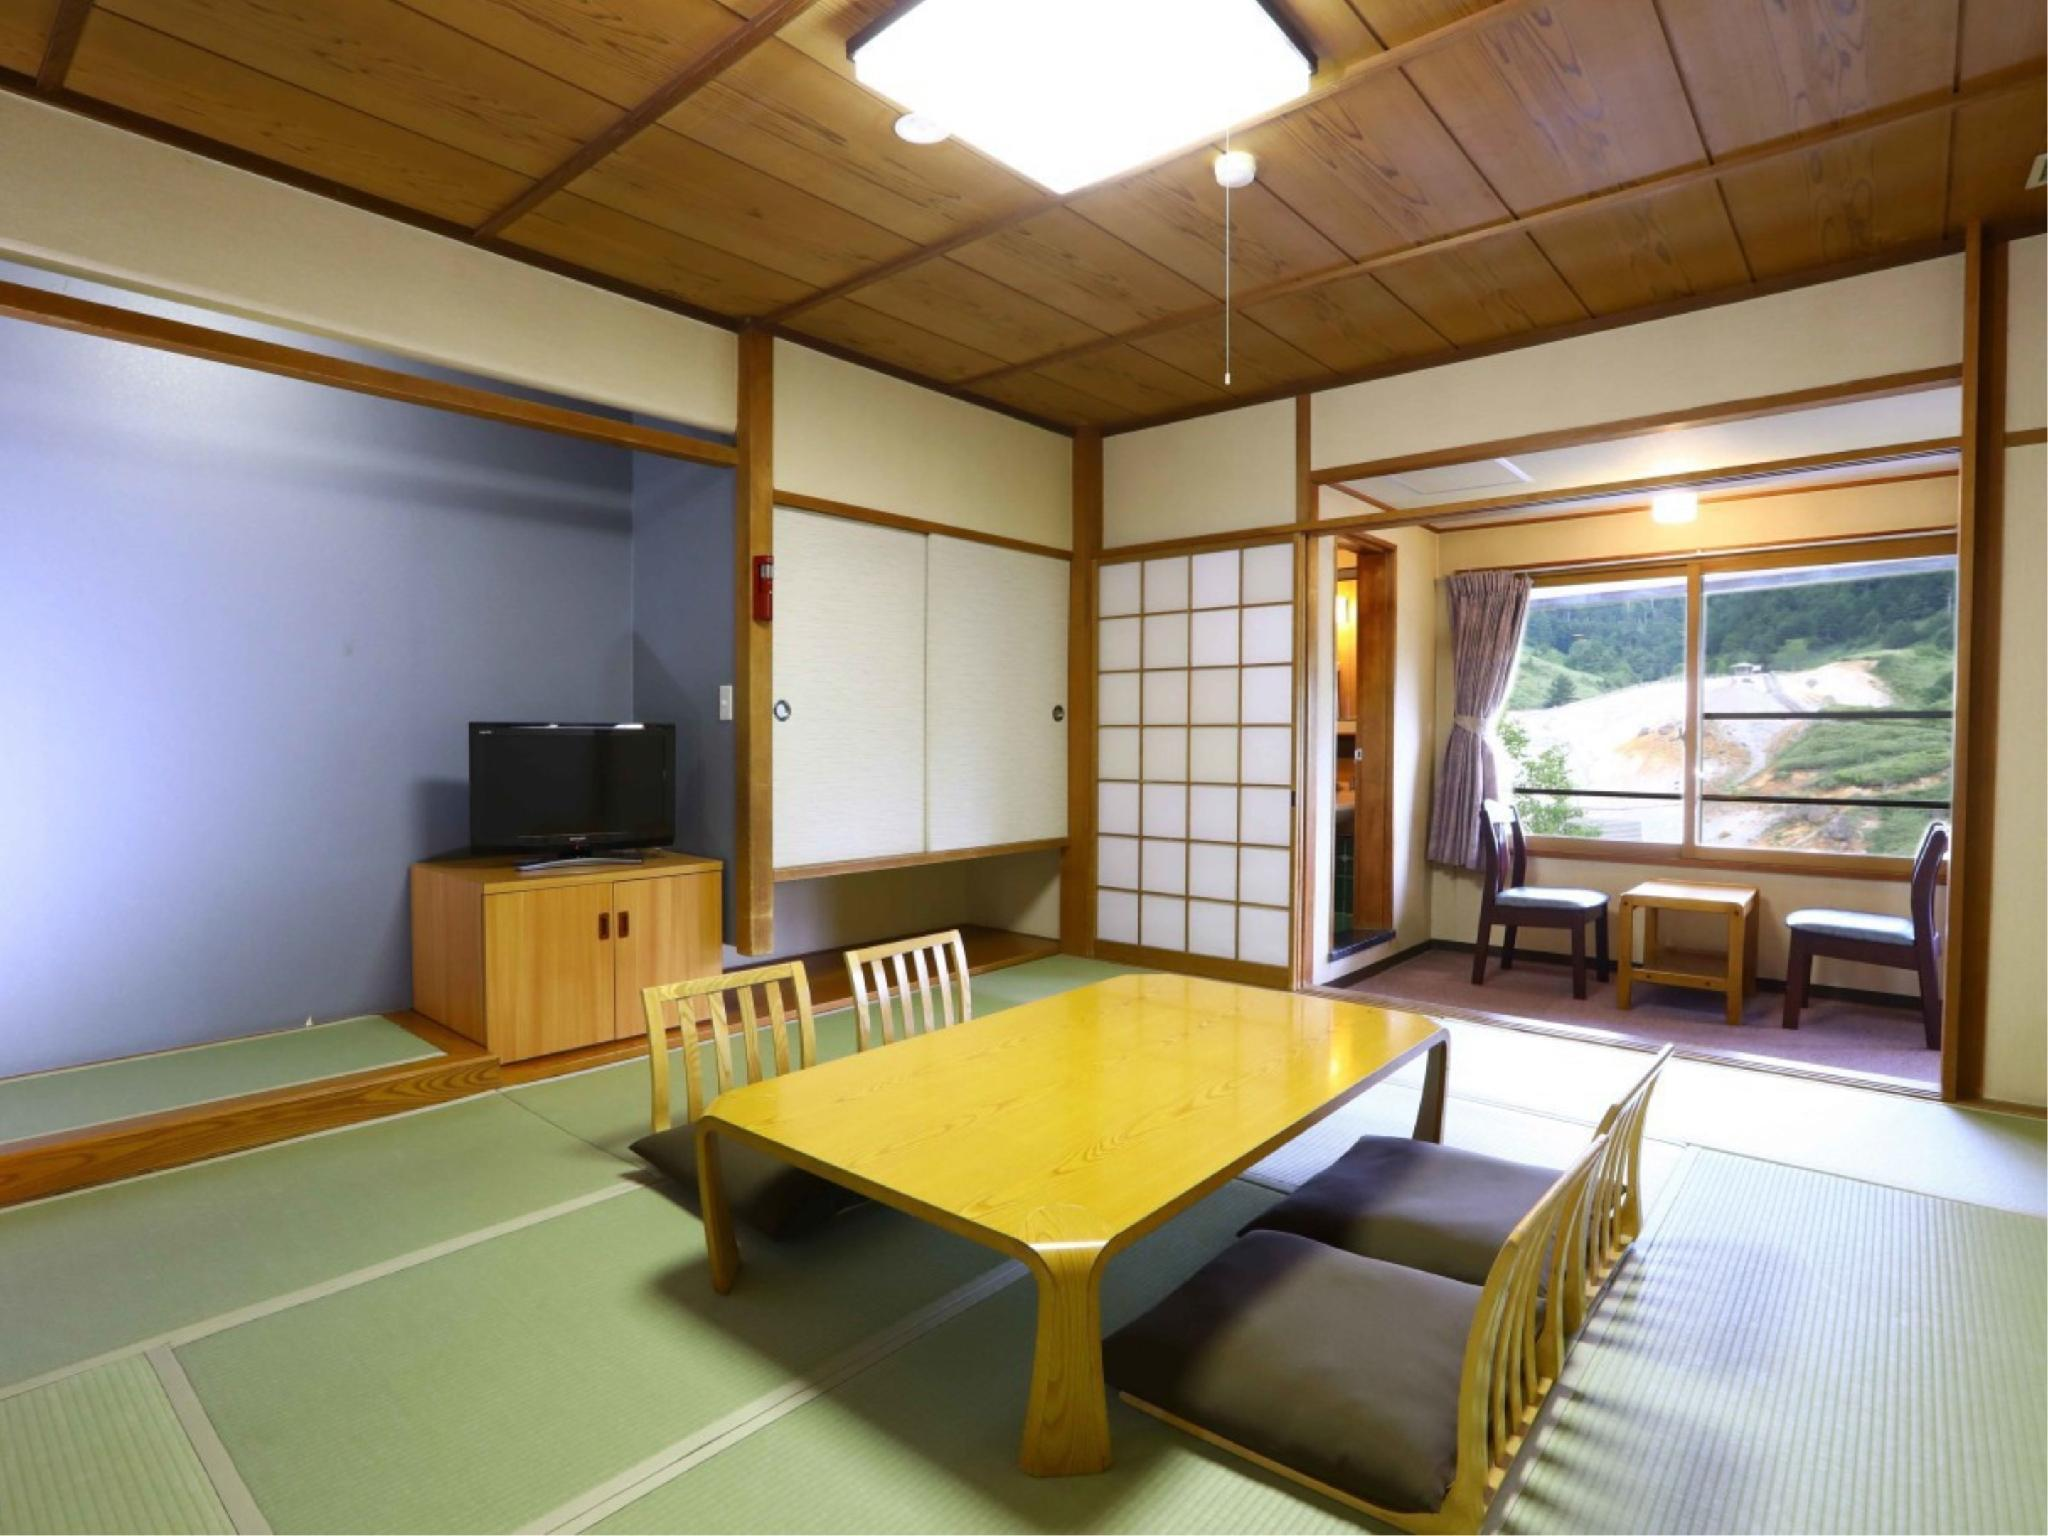 和室(本館)|10畳+踏込2.5畳 (Japanese Style Room Main Building)